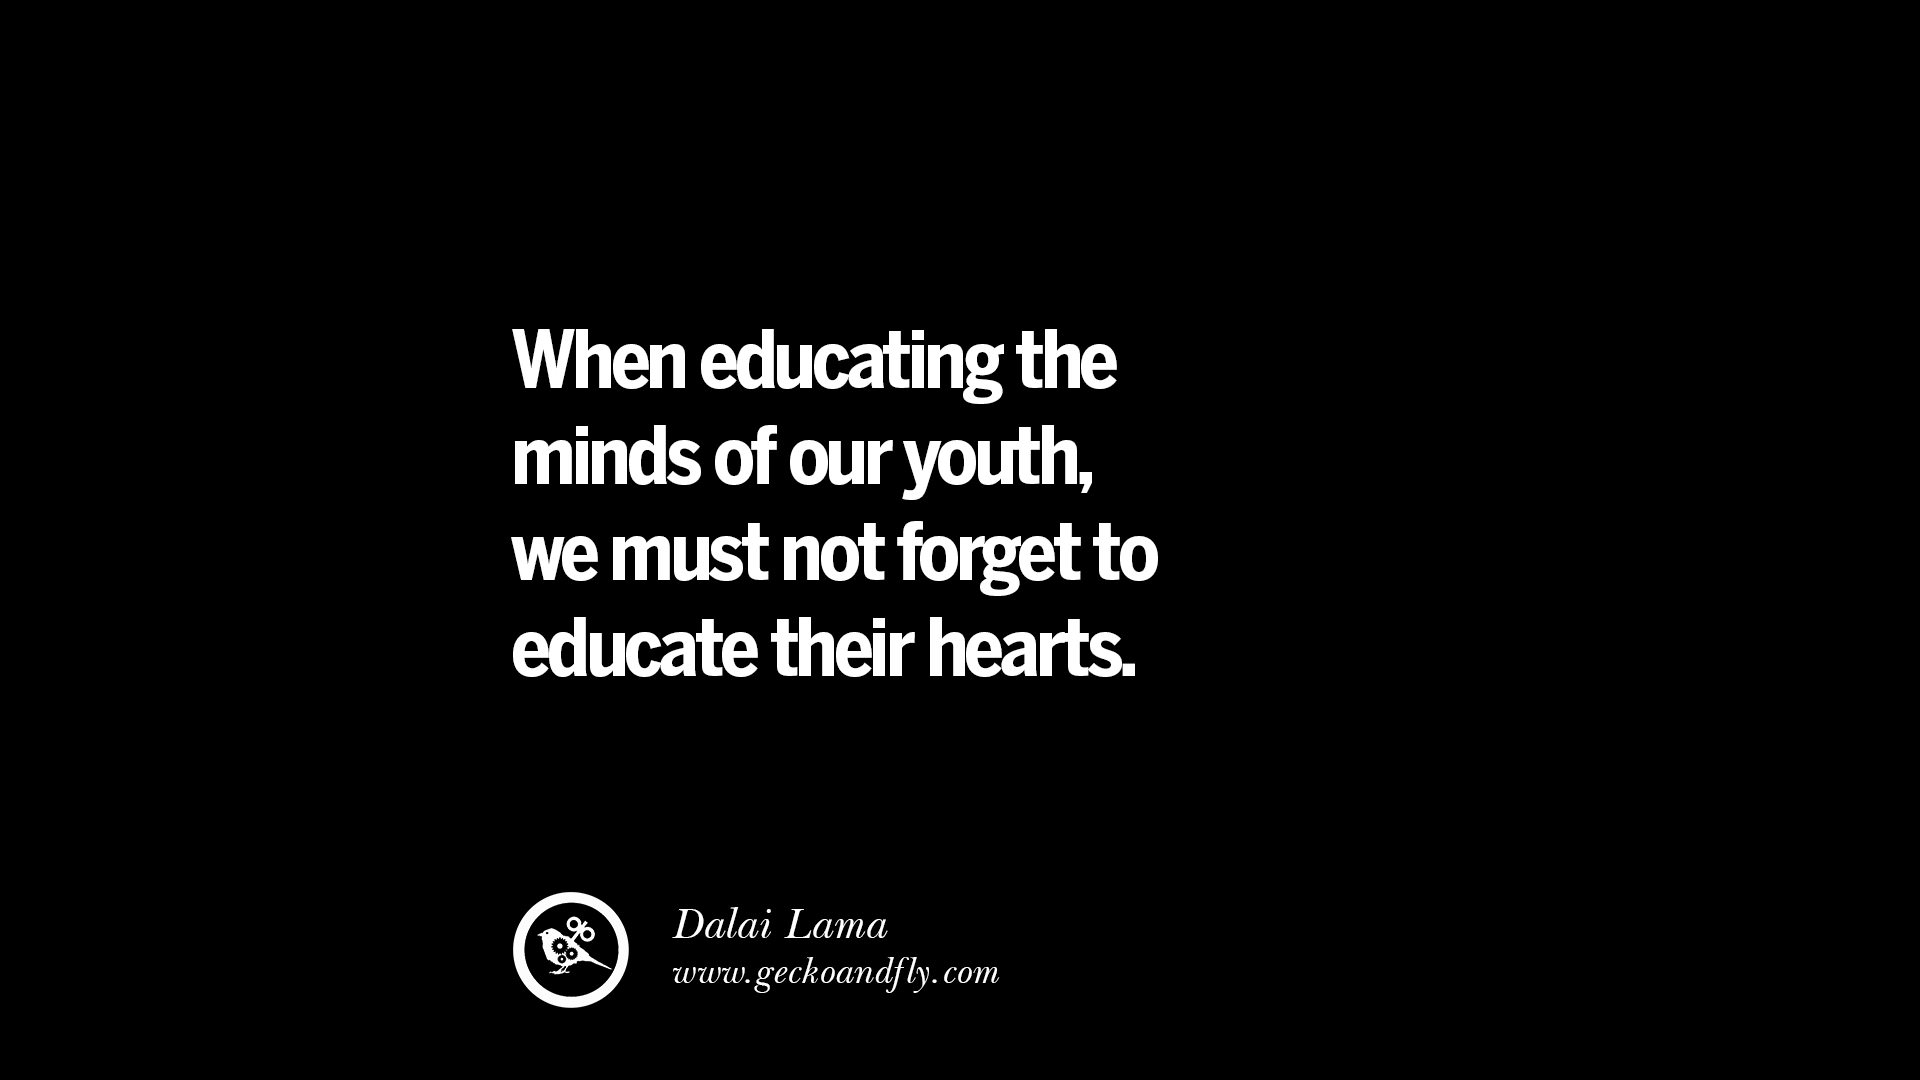 21 Famous Quotes On Education, School And Knowledge